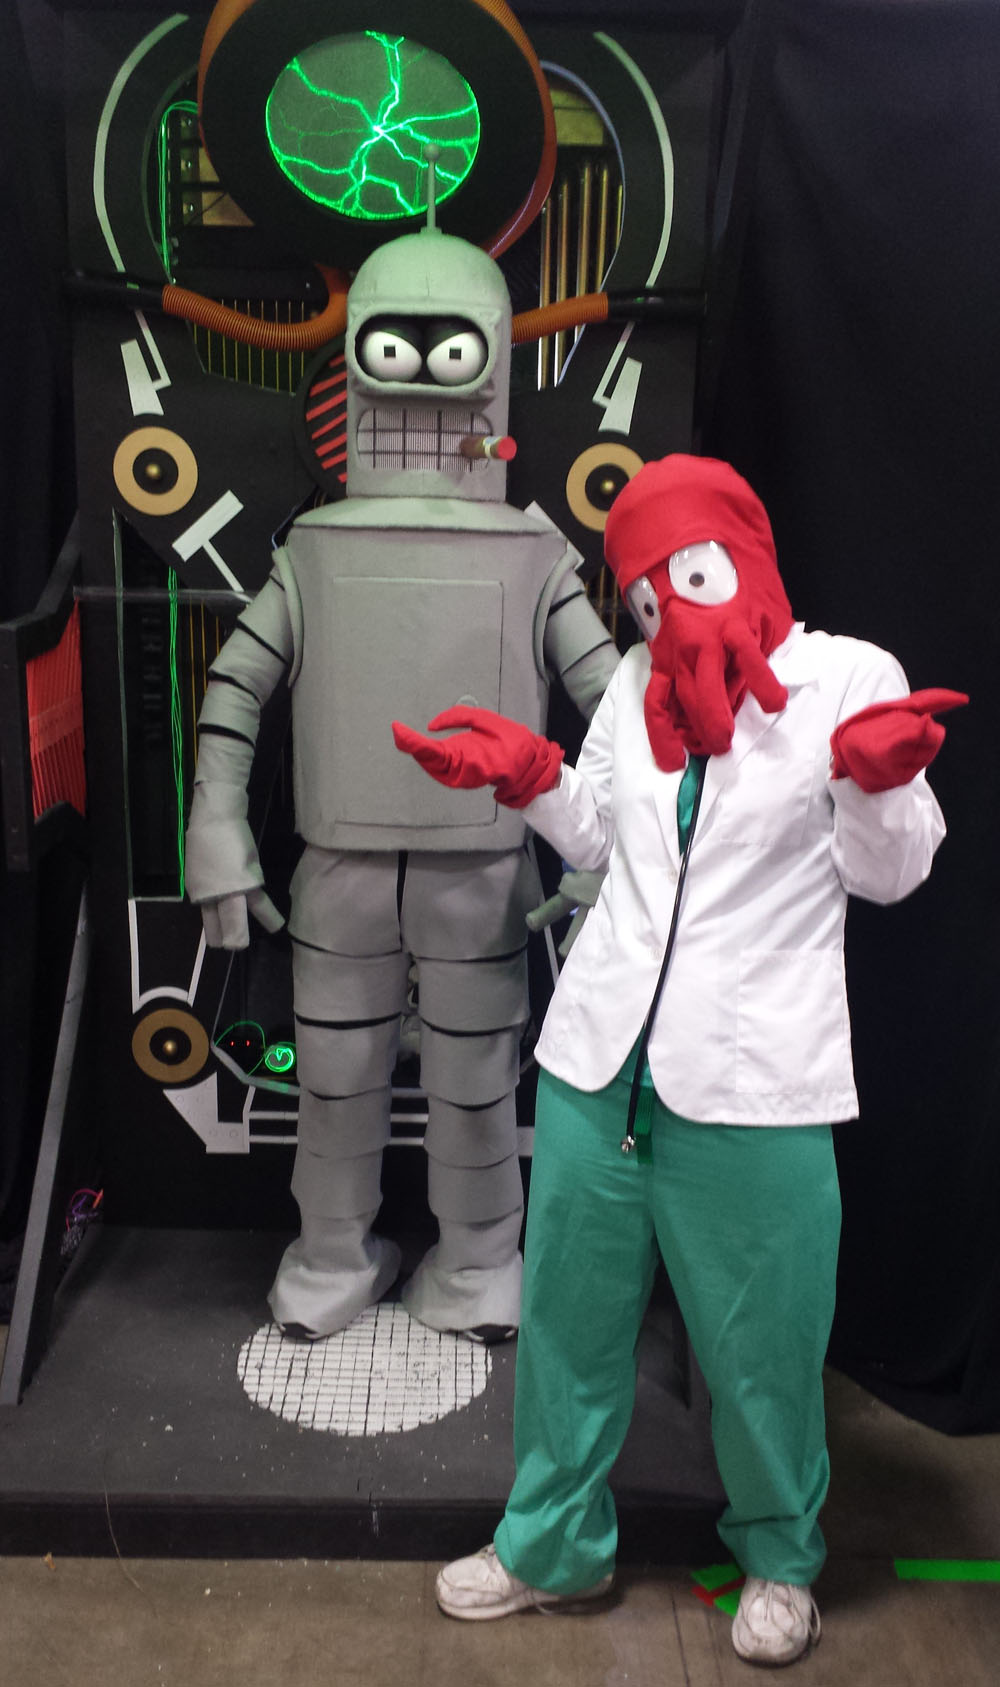 Bender_and_Zoidberg.jpg